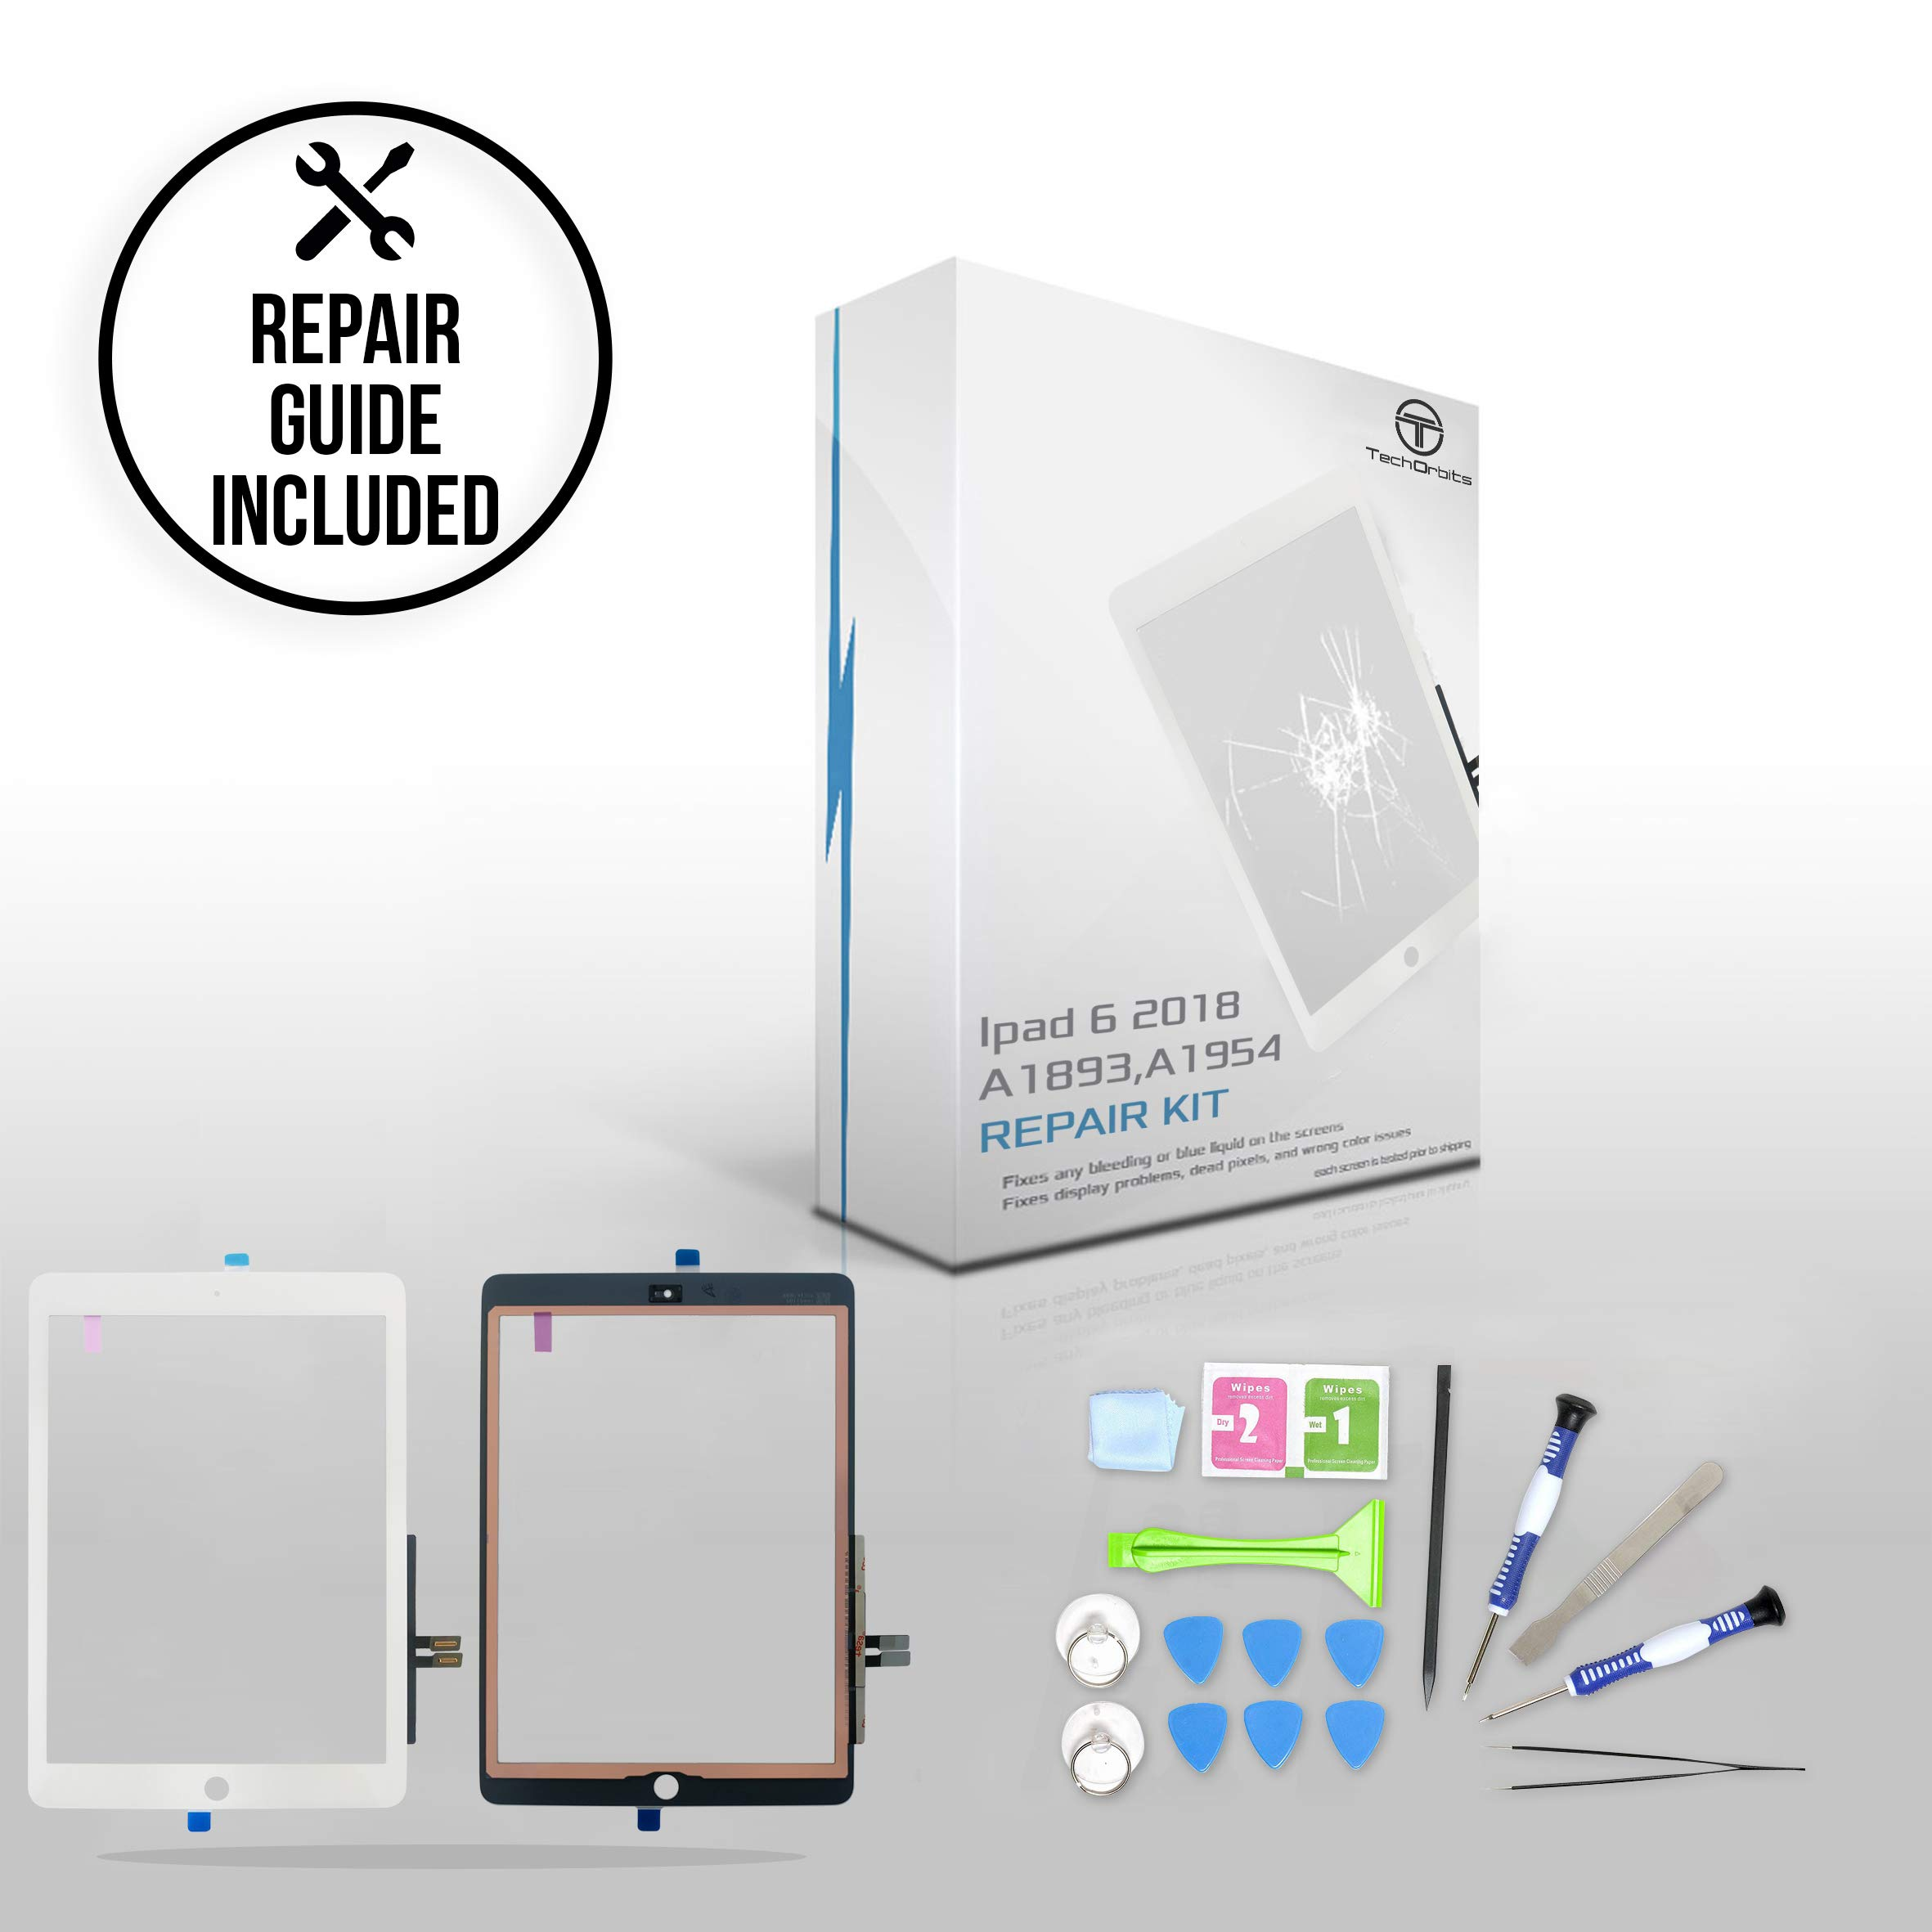 TechOrbits Replacement 9.7' Touch Digitizer Glass for Ipad 6 6th Generation 2018 (A1893, A1954) White with Repair Guide/Kit